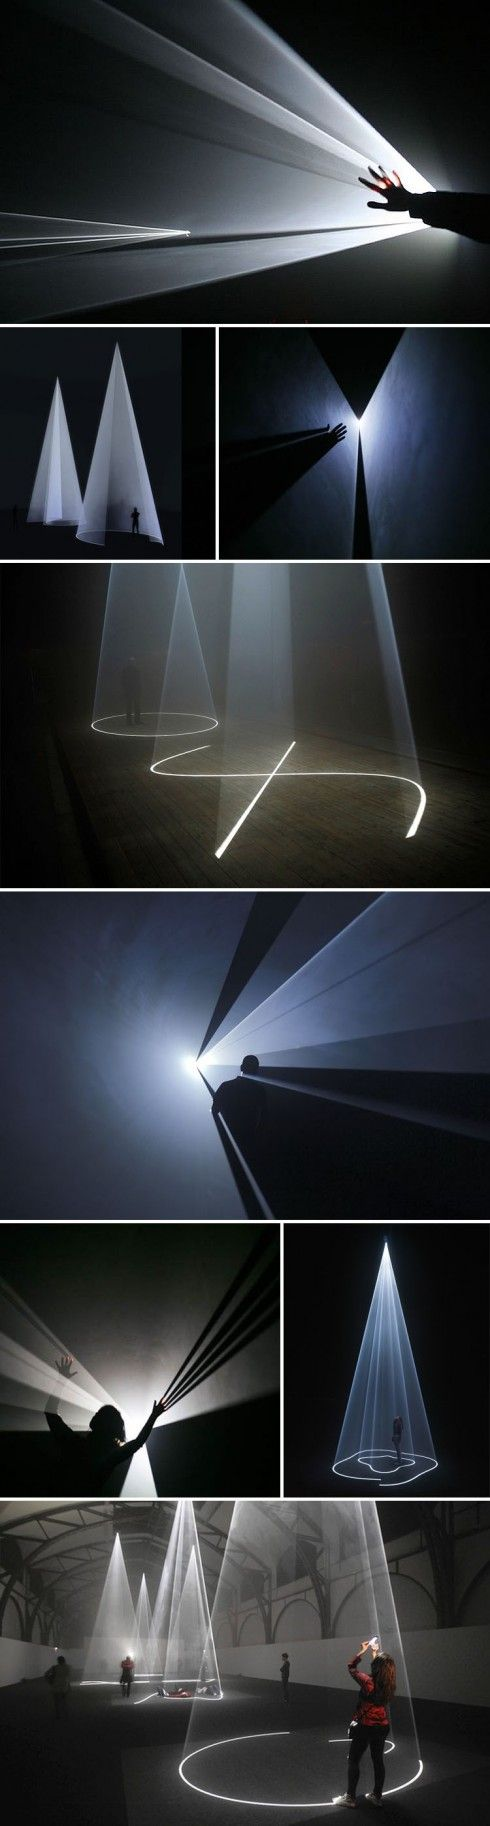 light sculpture  Five Minutes of Pure Sculpture by Anthony McCall